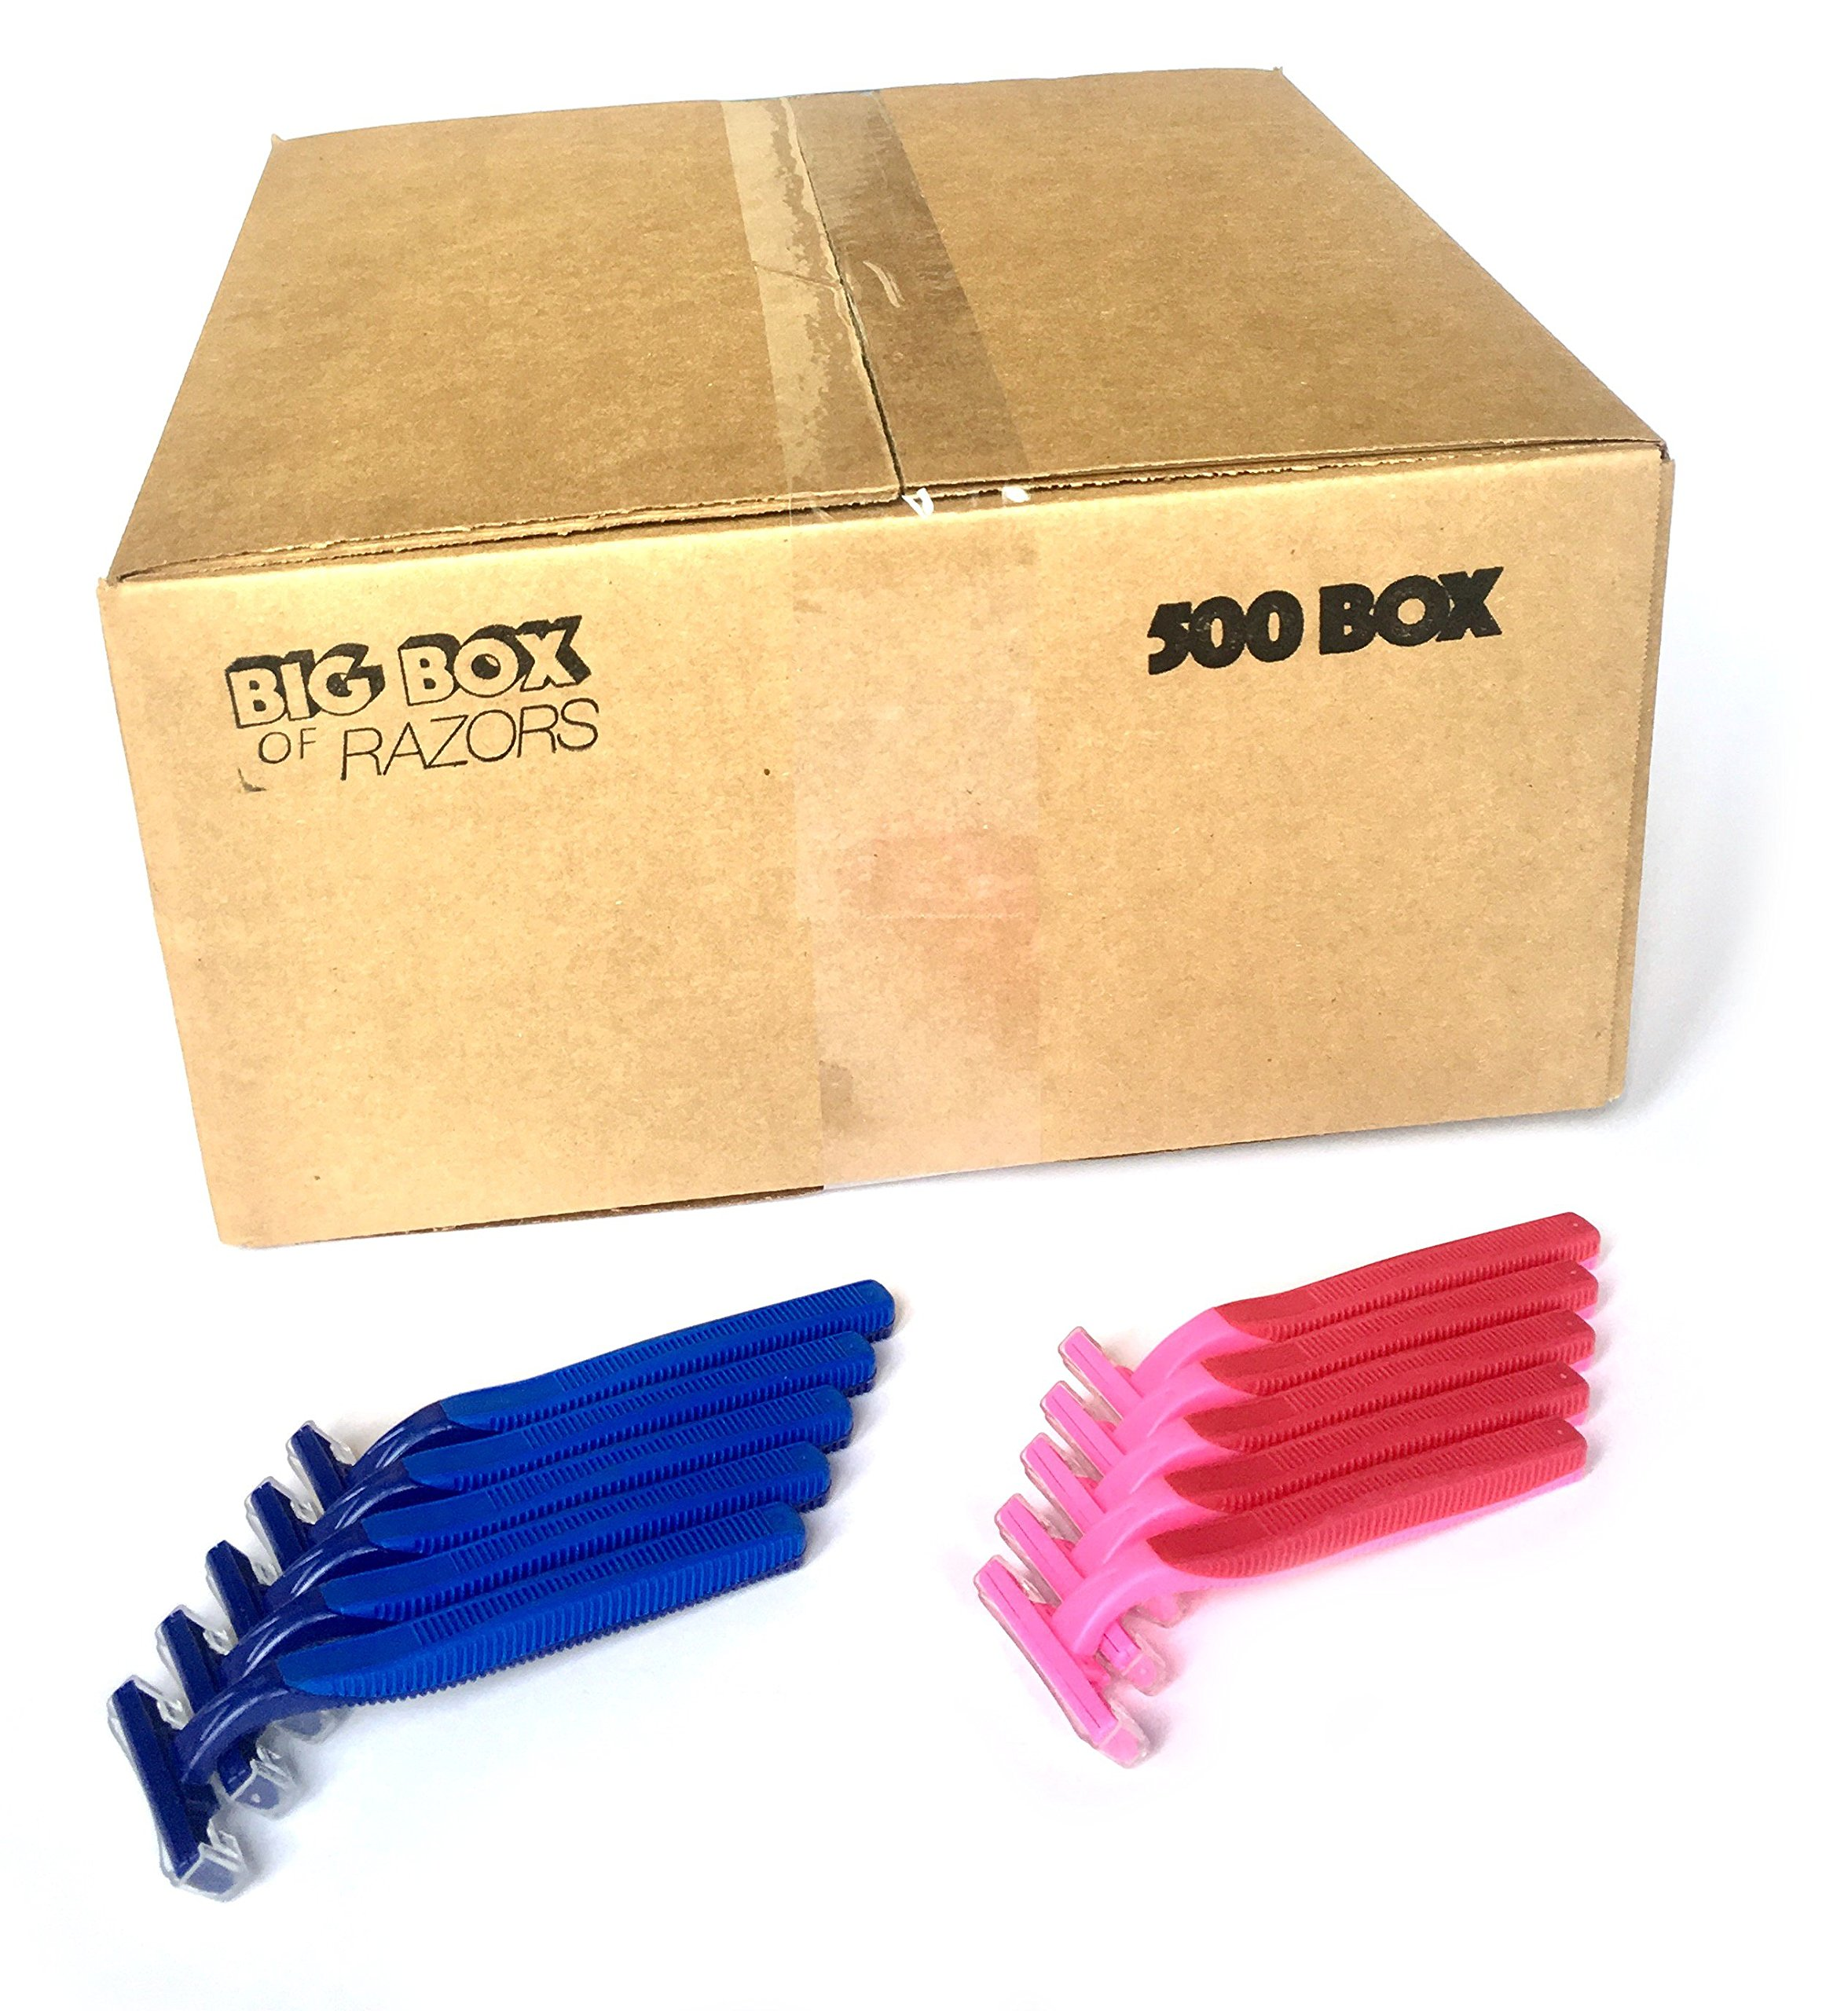 500 Box His & Her Combo Pack of Blue & Pink Bulk Wholesale Disposable Twin Blade Razors for Men & Women